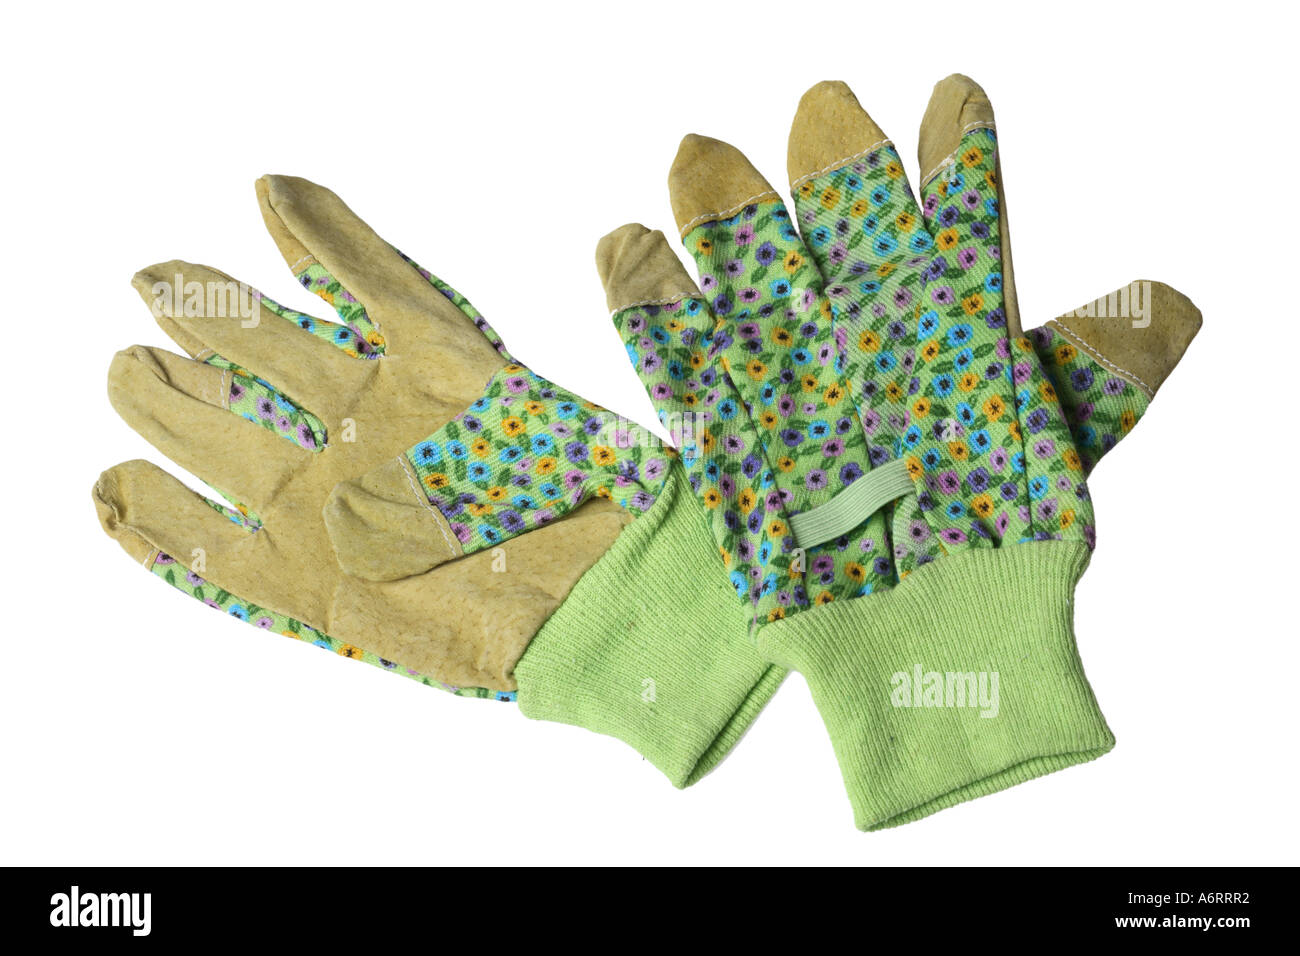 Gardening Gloves - Stock Image